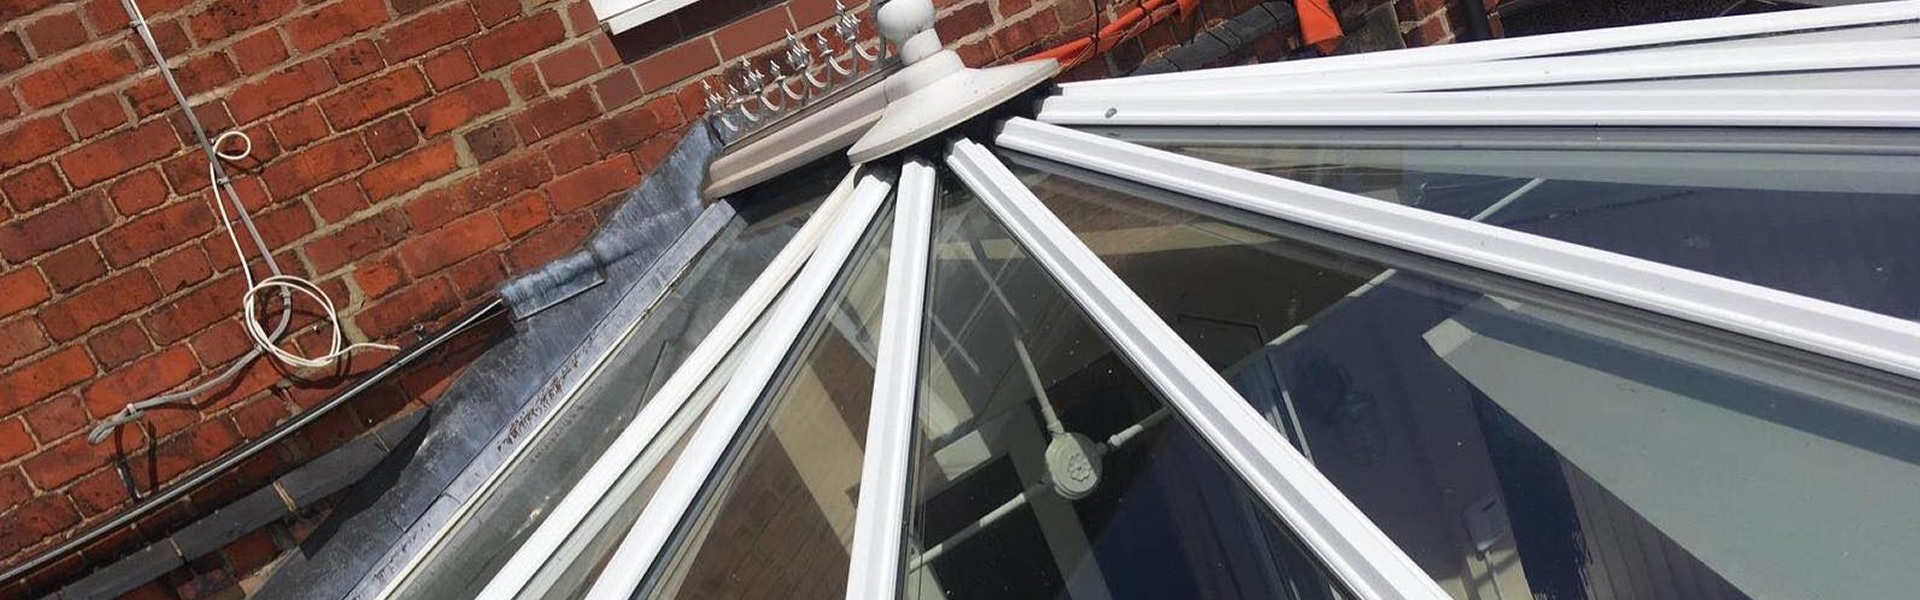 Conservatory Window Cleaning